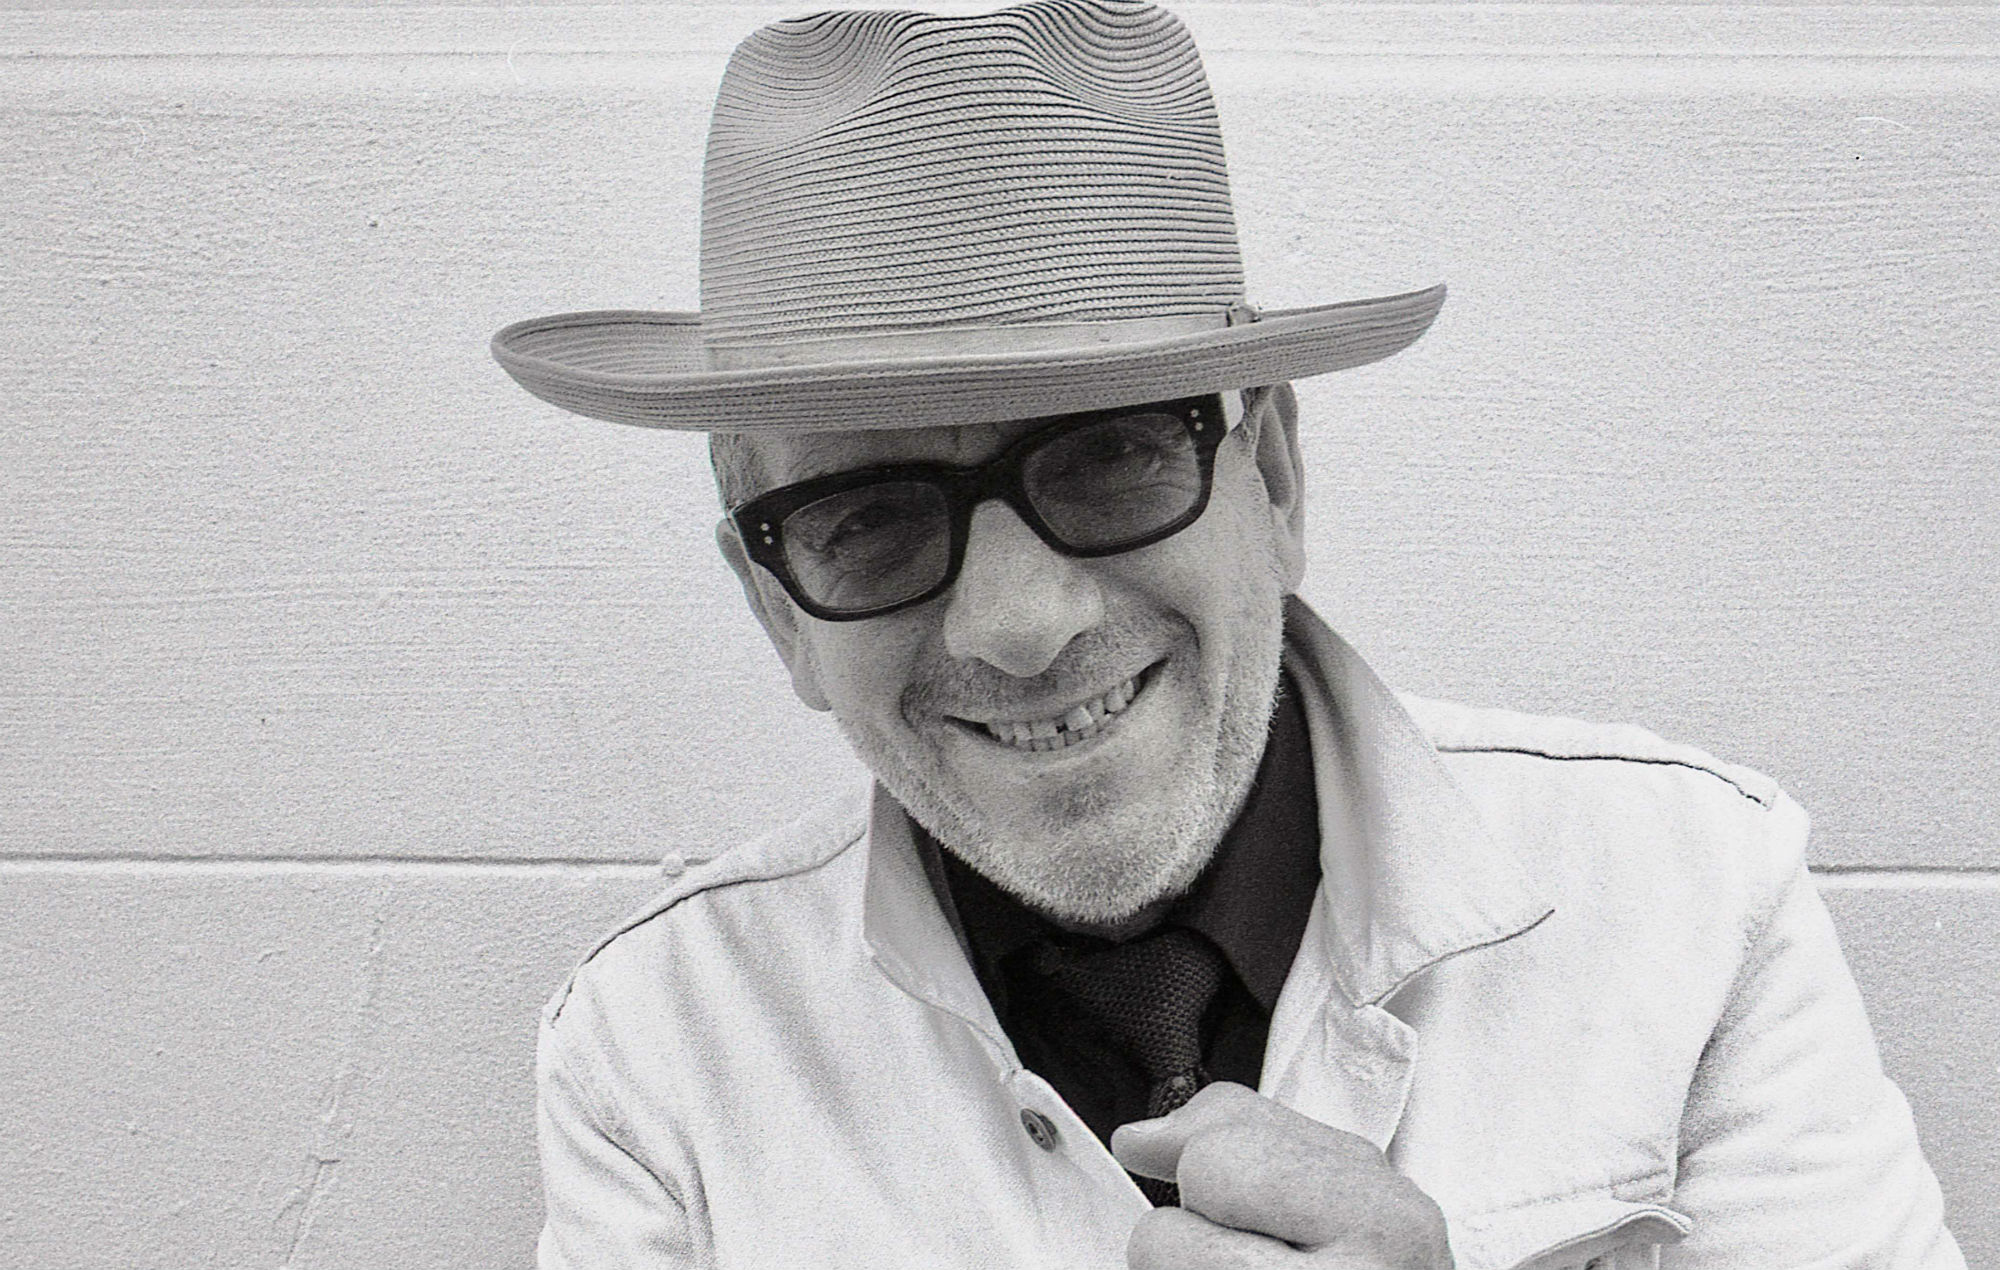 Elvis Costello shares new single 'Hetty O'Hara Confidential', Shop Ticket Snatchers